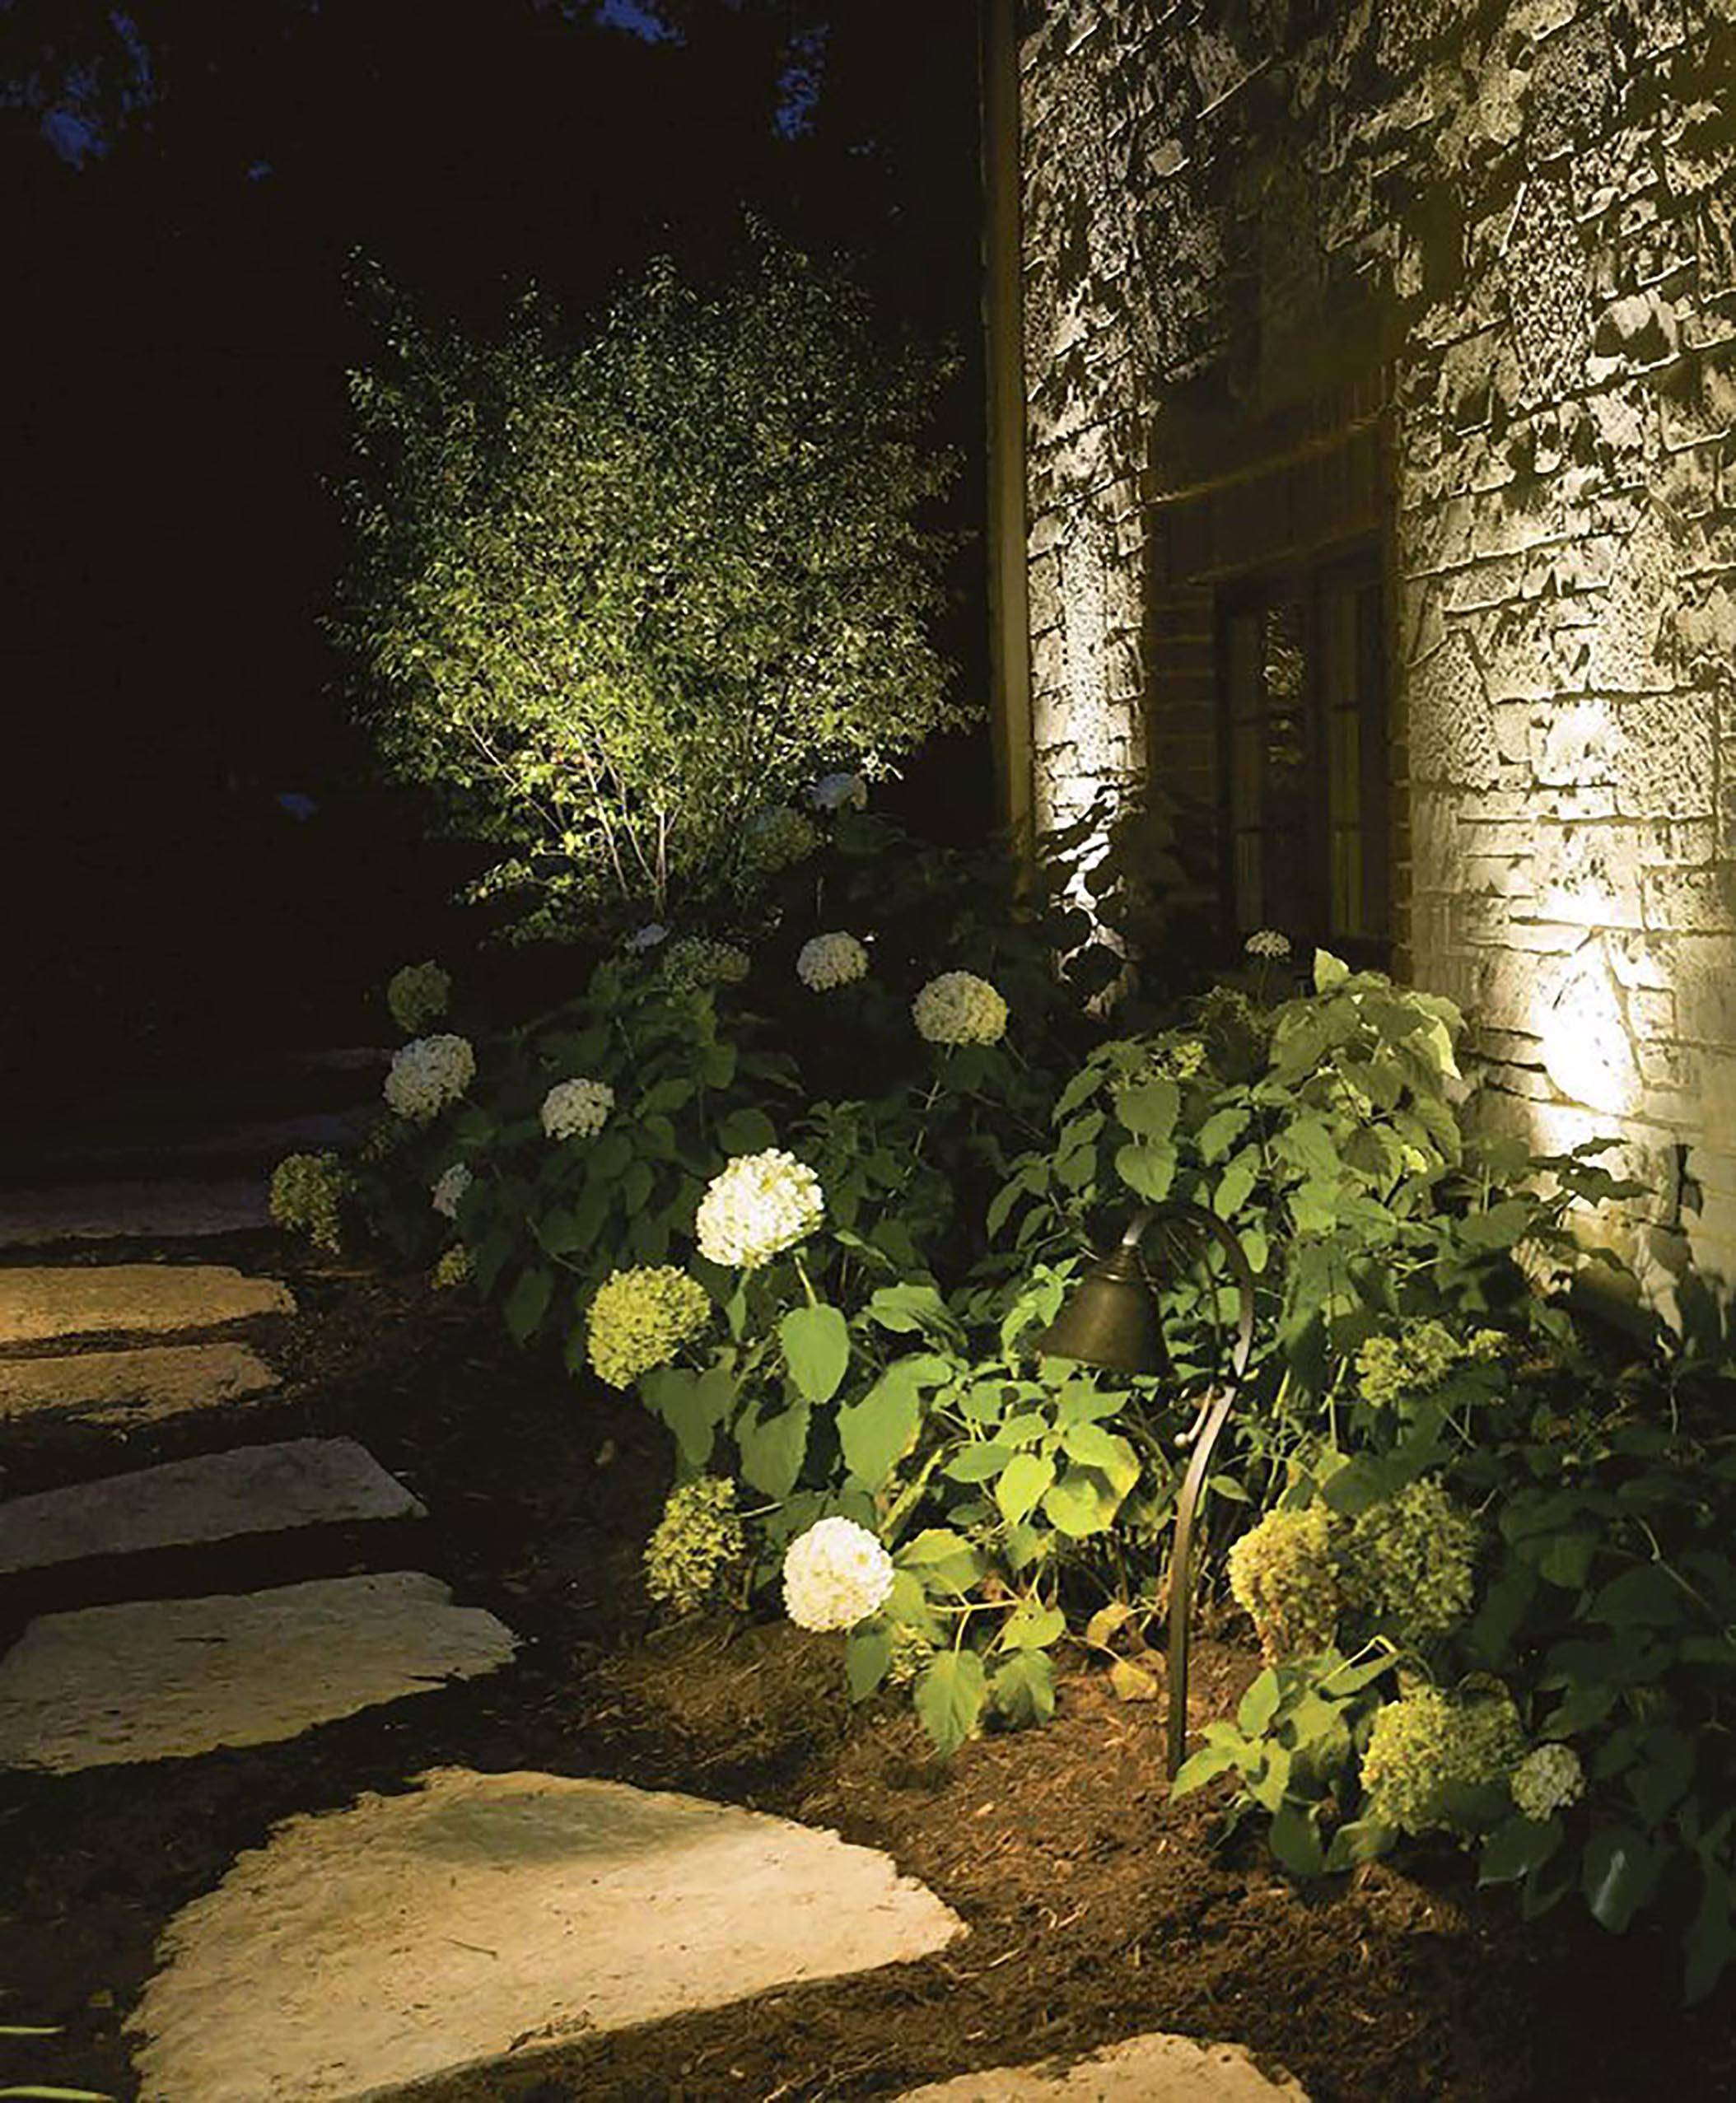 With the correct electrical infrastructure, you can build upon your outdoor lighting design over time.